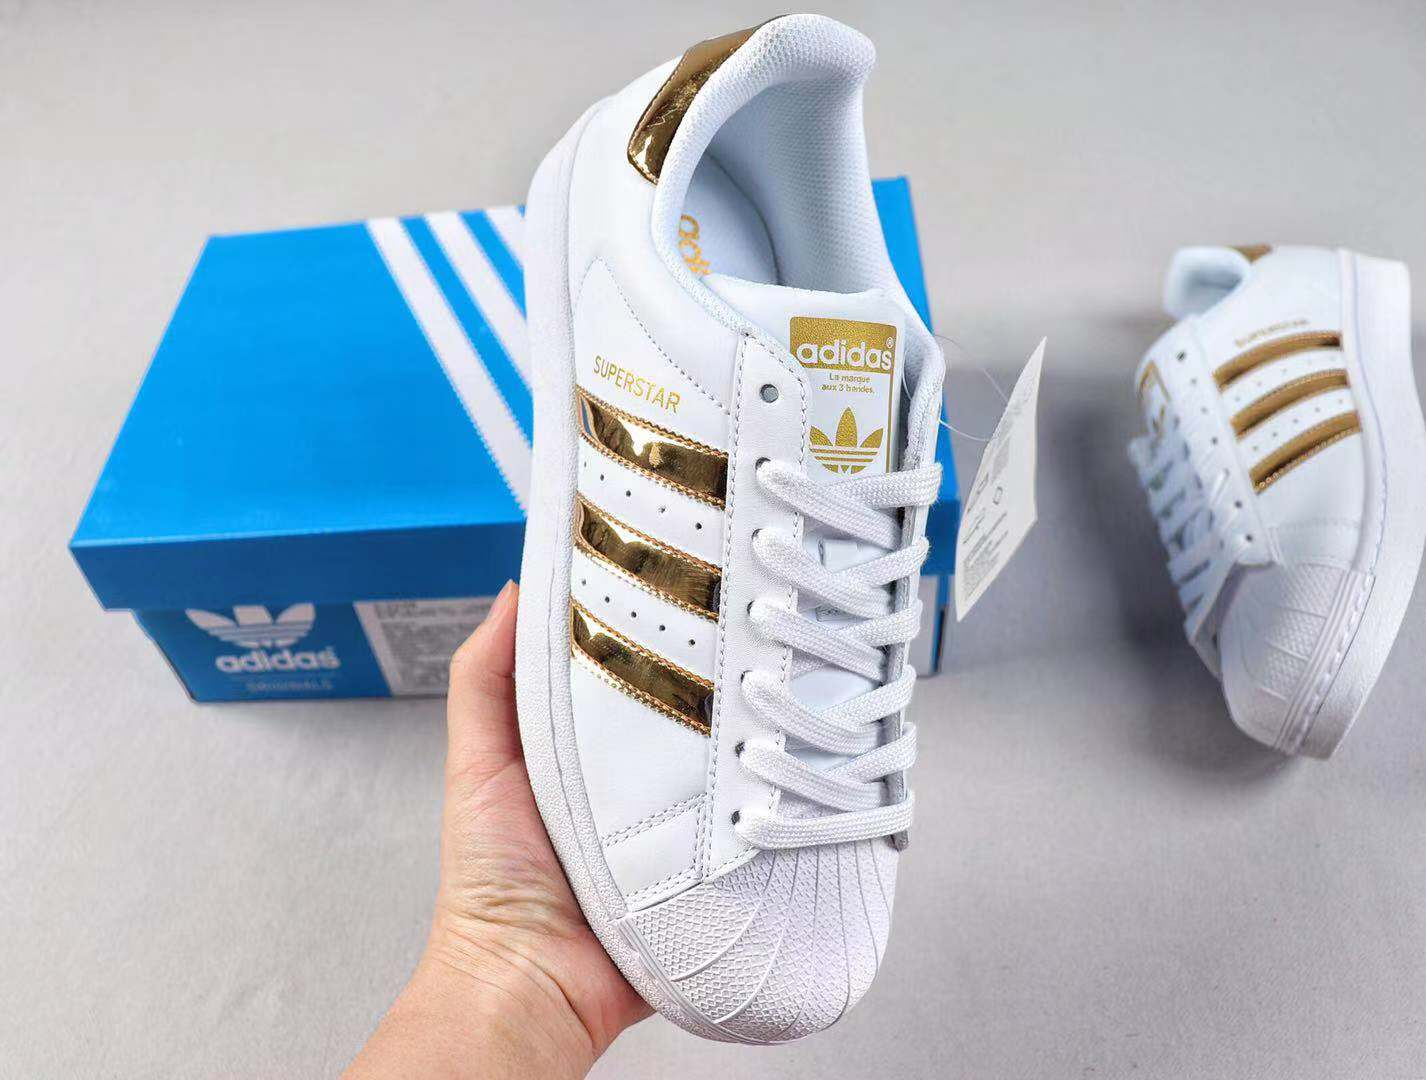 Adidas Superstar Original Newest Shoes Cloud White/Metallic Gold S81872